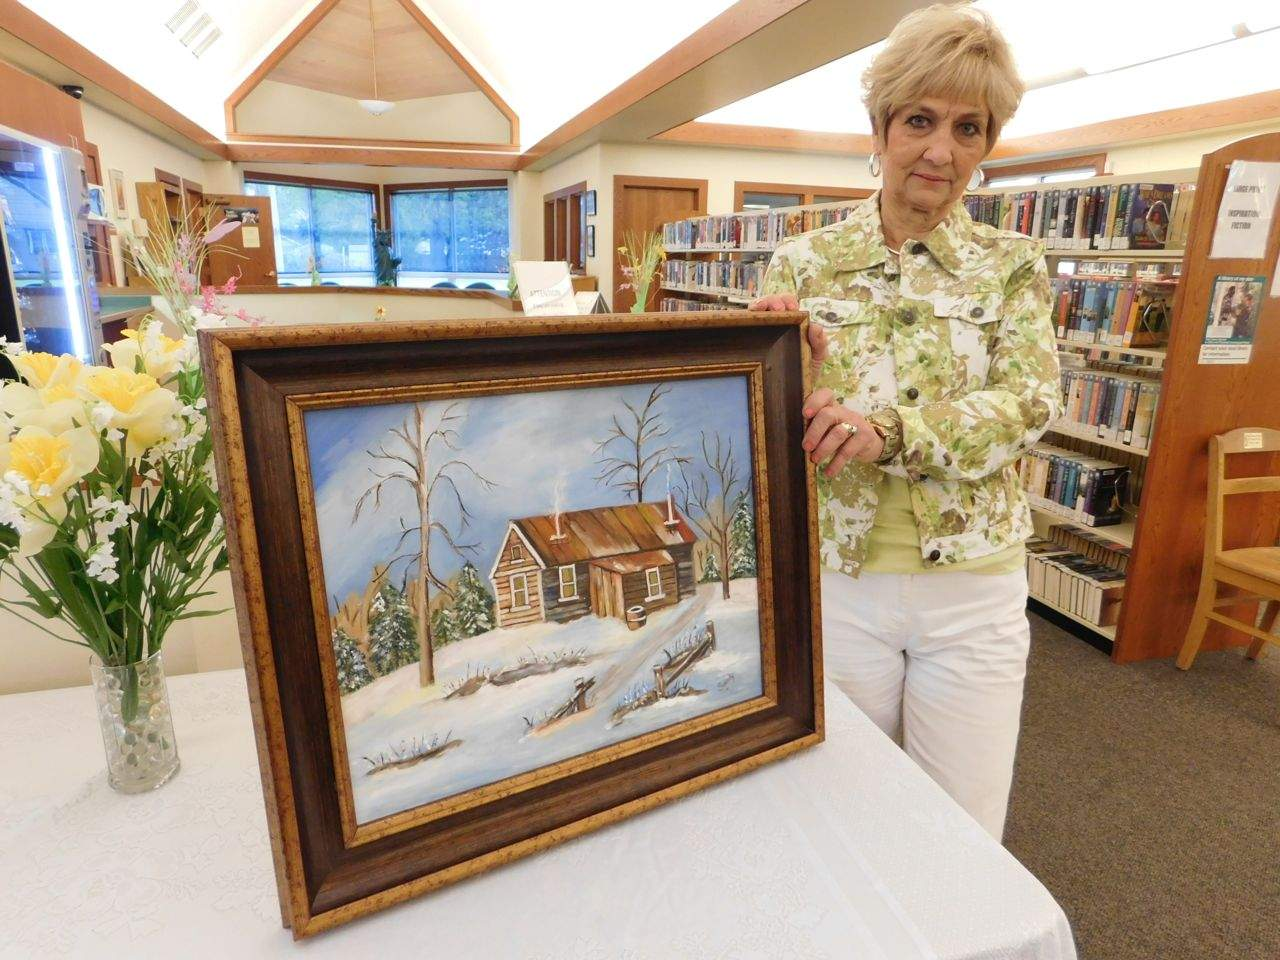 Artist Sandra Long displays her first winter scene, which will now have a home on the Wall of Art at the Benton Public Library.